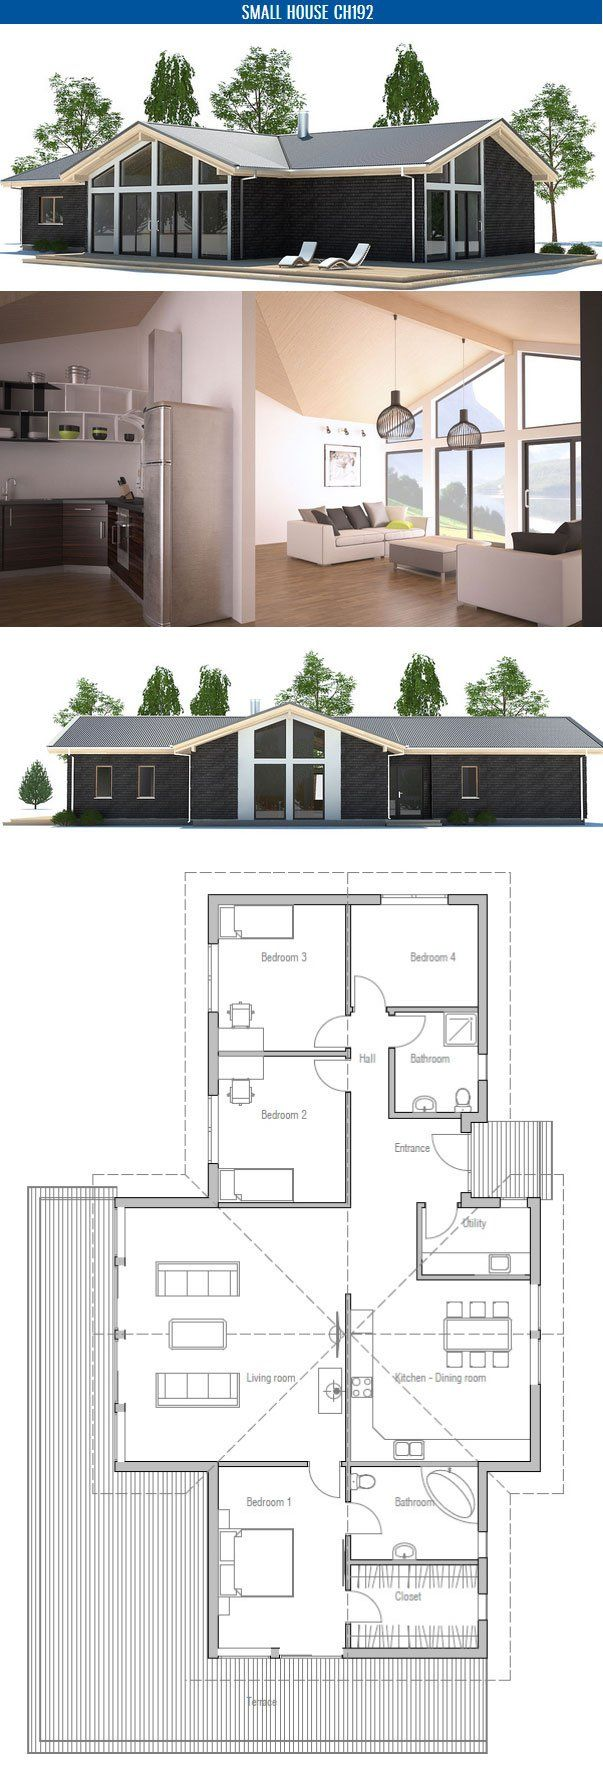 Small House Plan with four bedrooms and